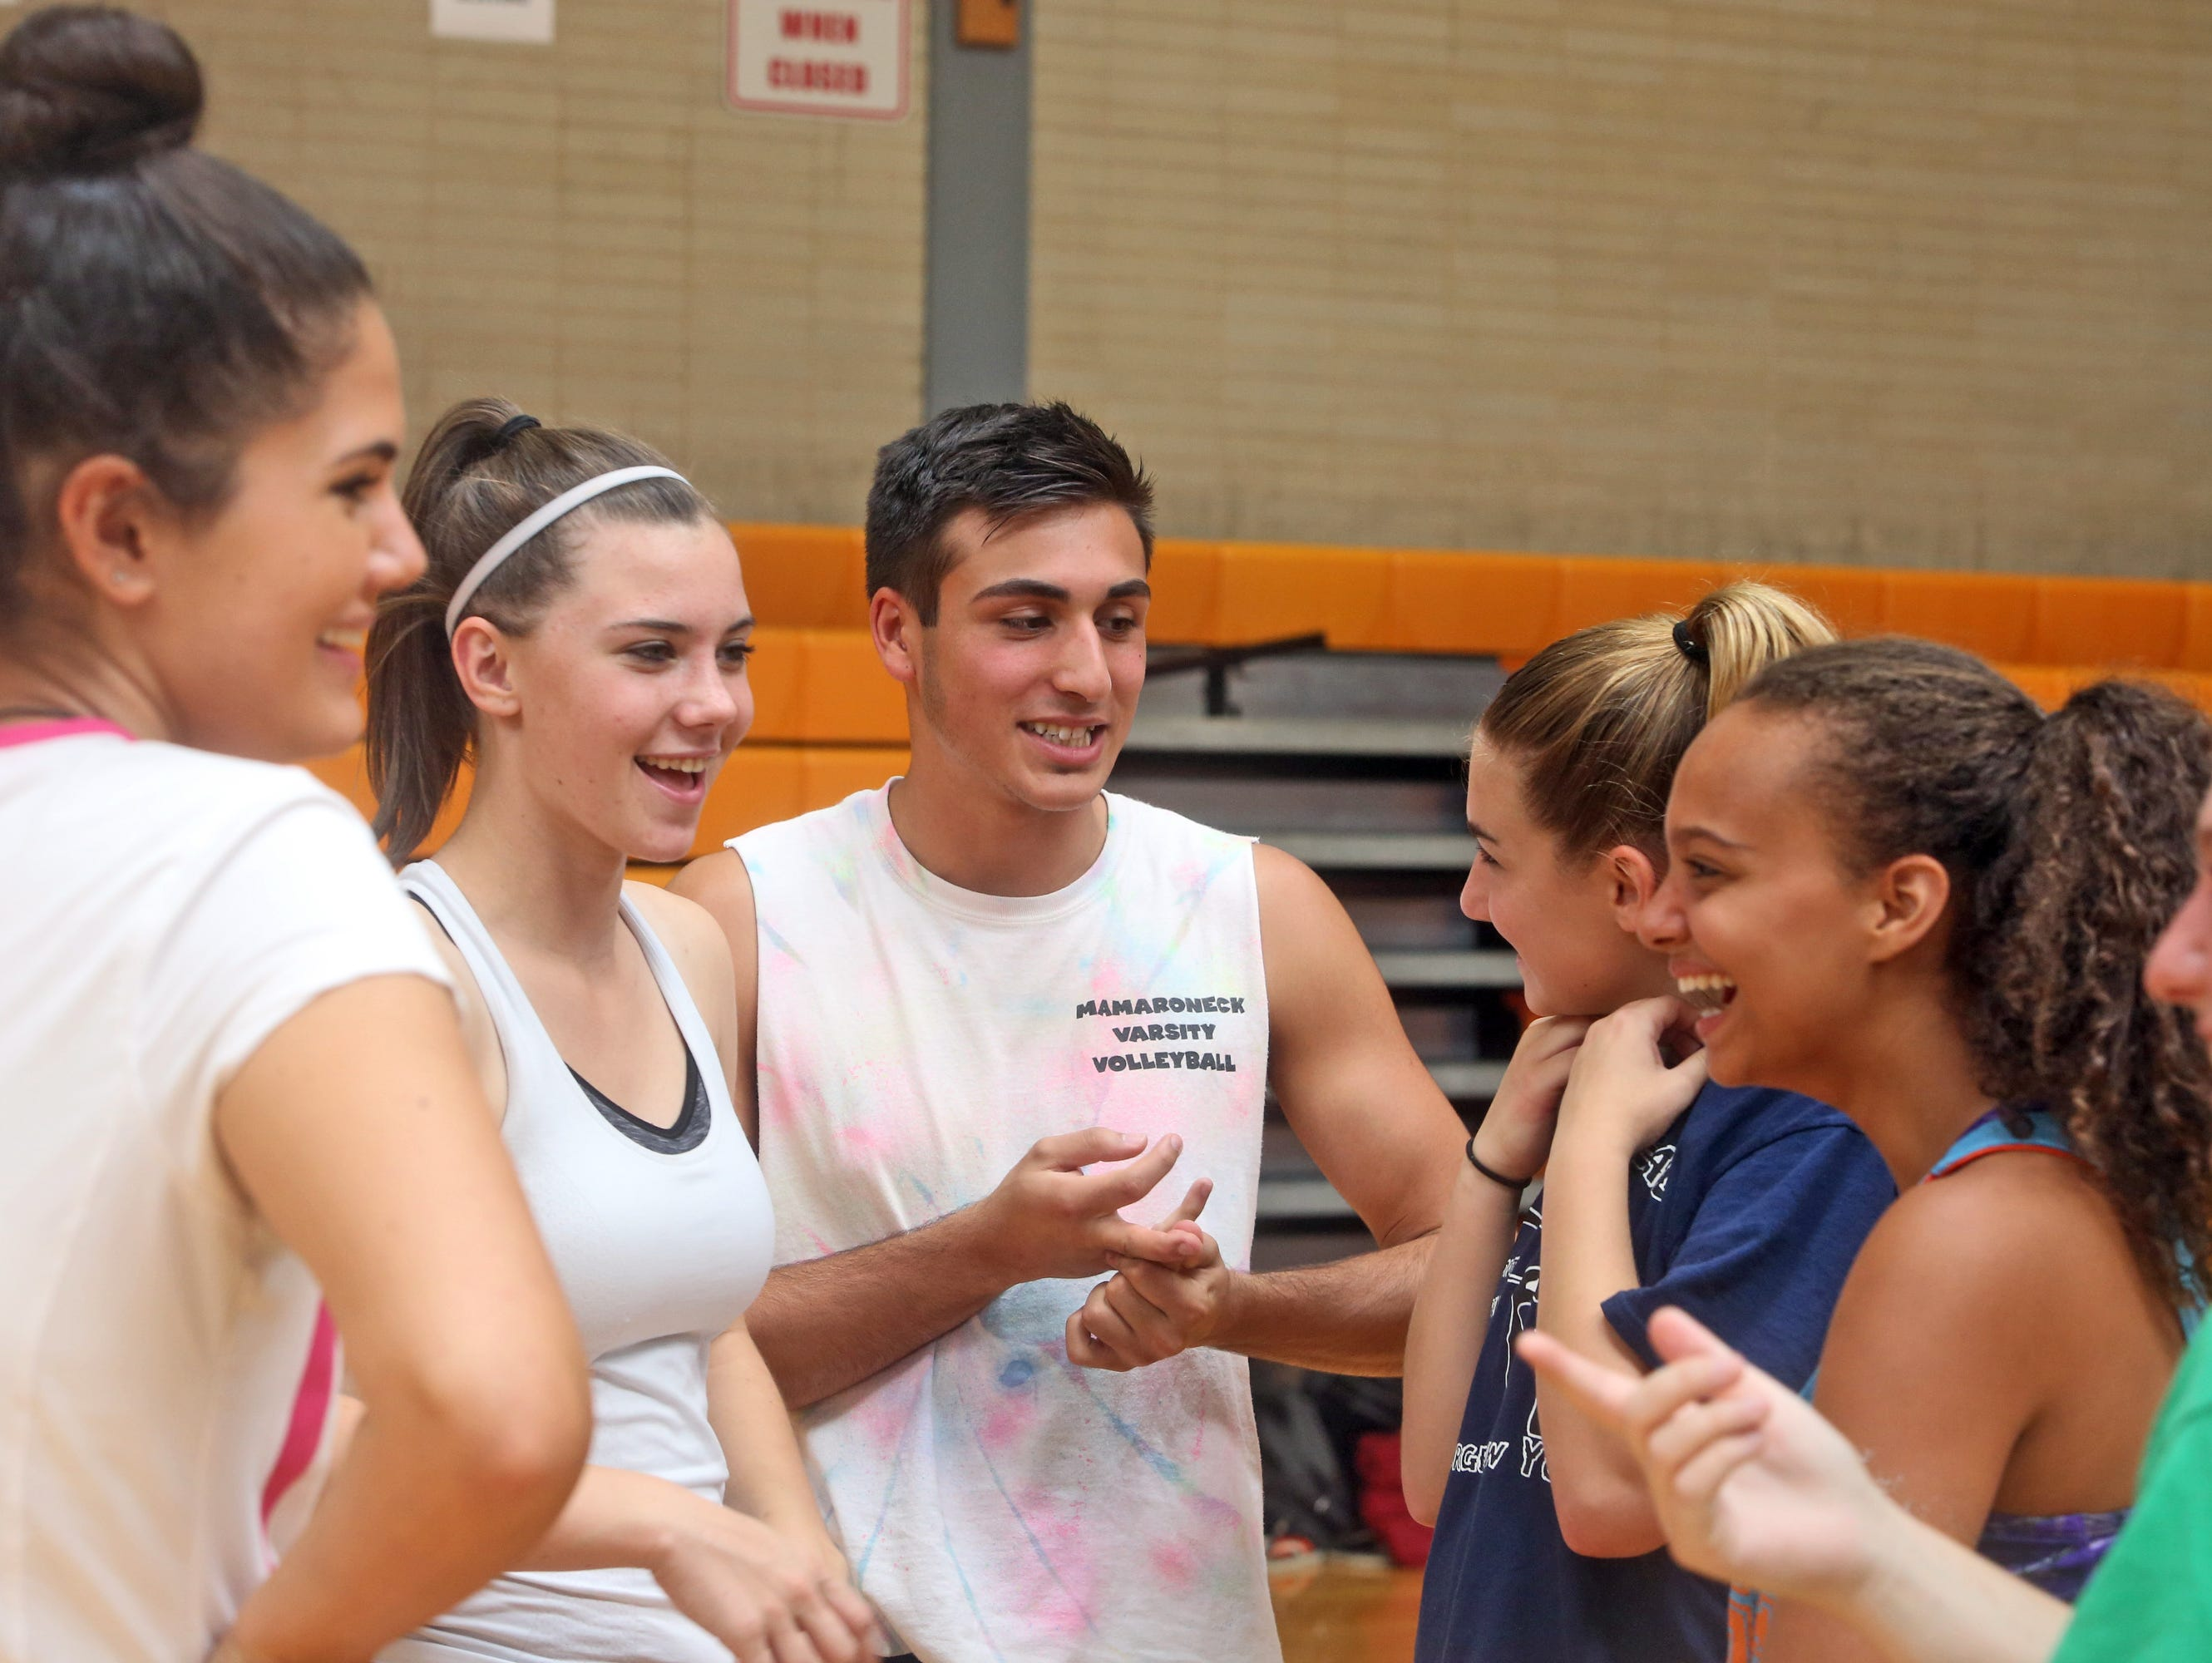 Andreo Otiniano, a senior at Mamaroneck High School, and a member of the girls volleyball team, talks with his teammates during practice Sept. 16, 2015. Otiniano played with the team as a sophomore, and still practices with the team and is on the roster, but present Section 1 rules do not allow him to play in matches.